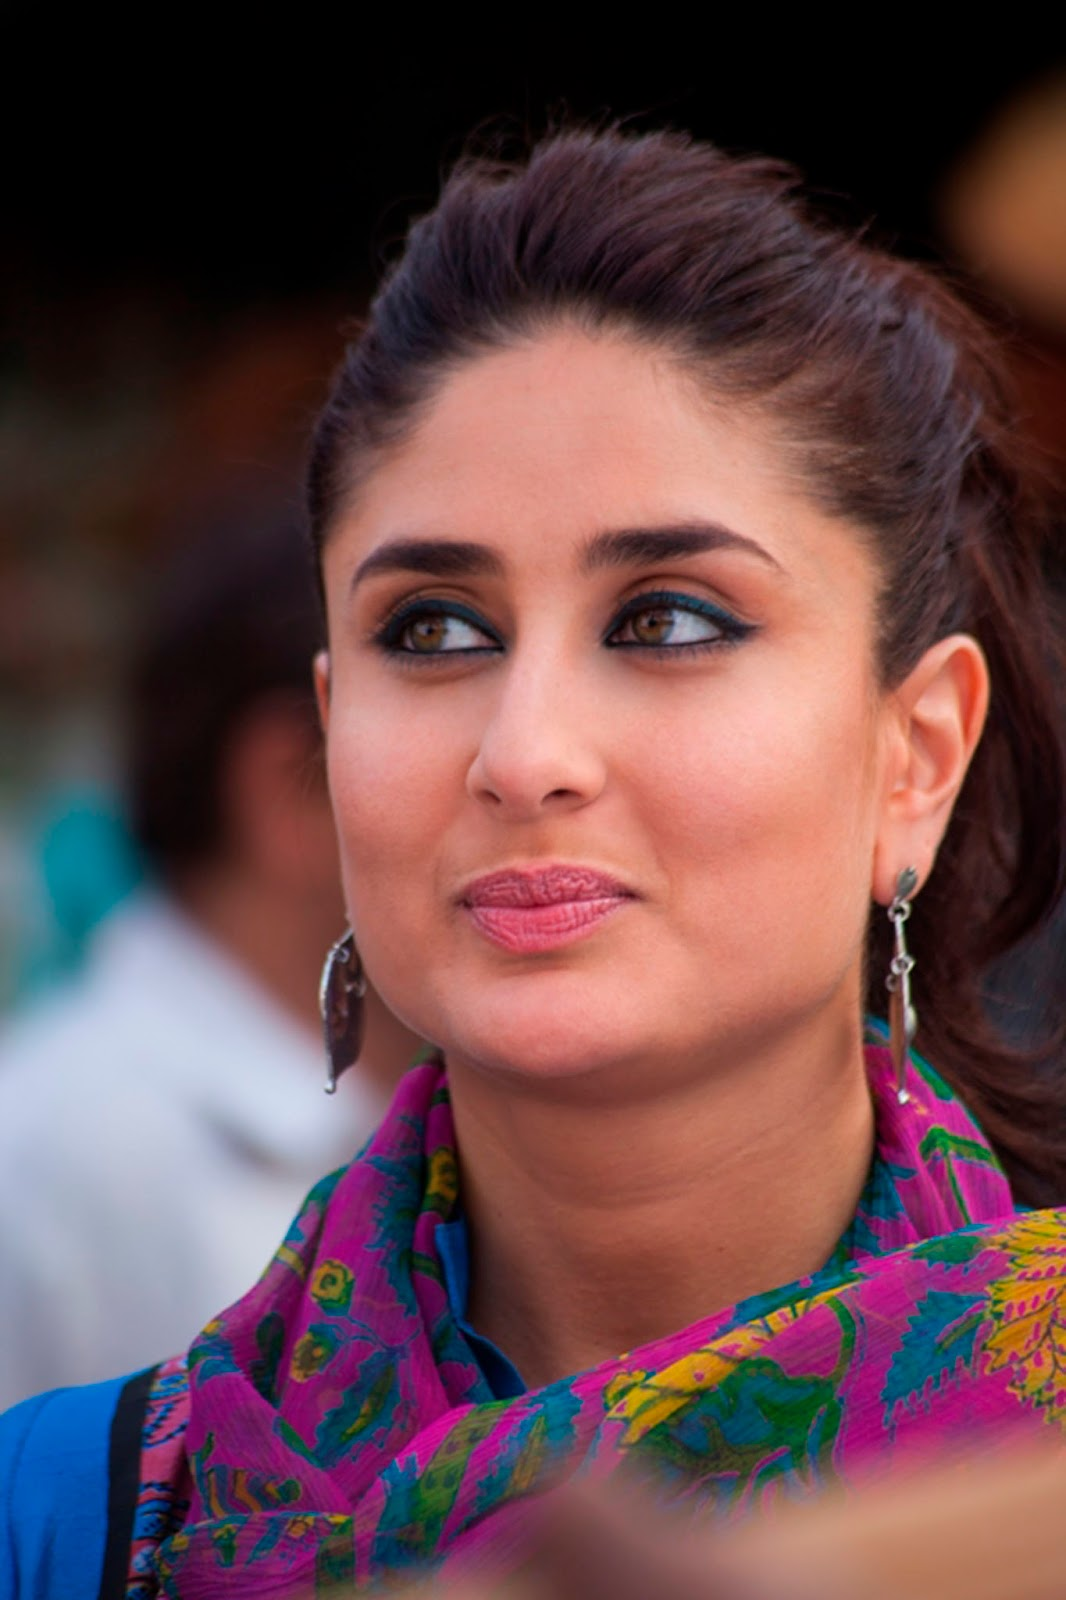 Kareena Kapoor No.1 Actress in MT WIKI Top 10 Bollywood Actress List, photo